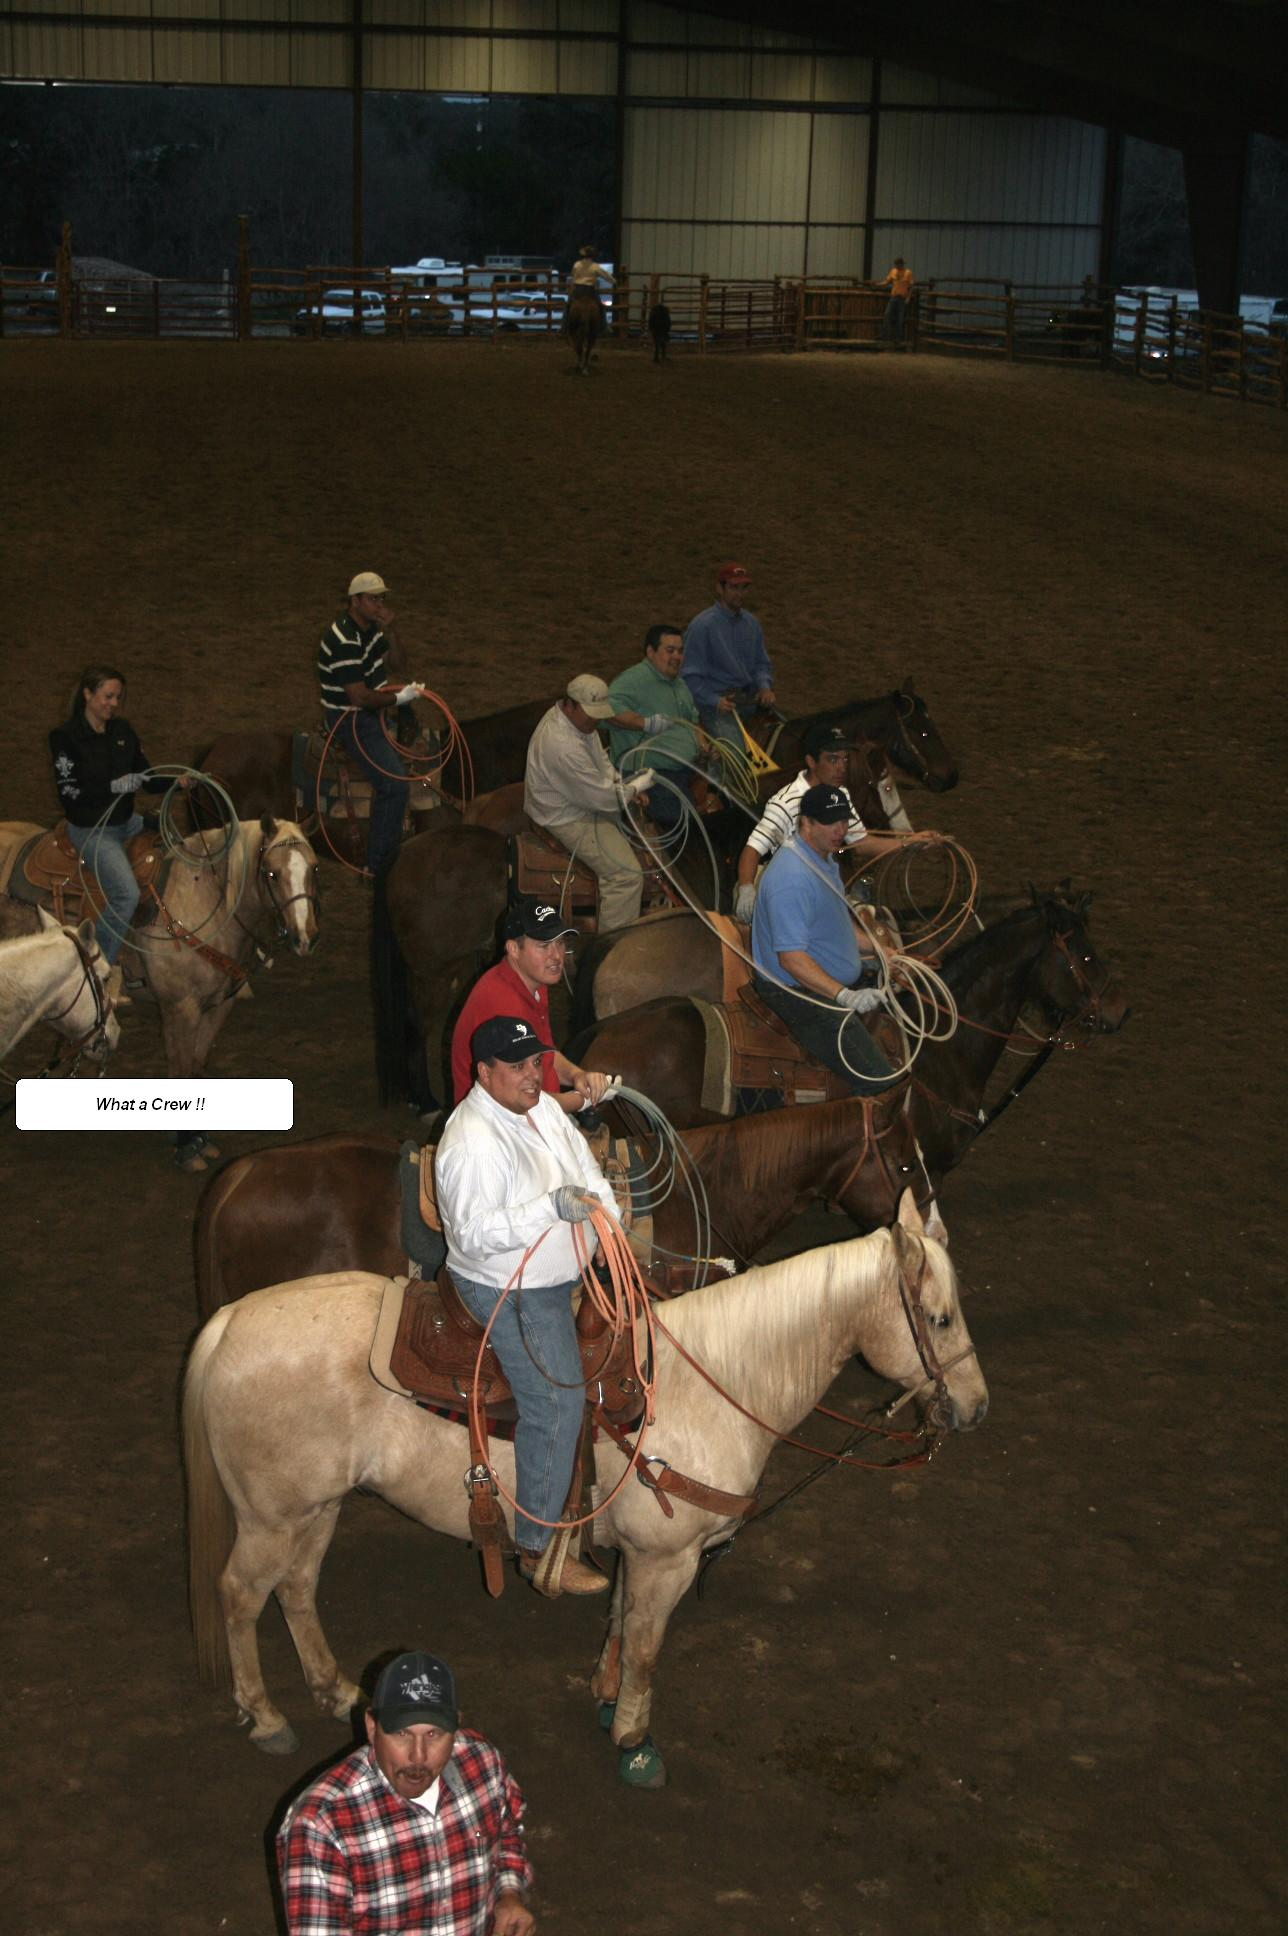 http://store.zcubes.com/C49CEADC5B984C1EAA8AC4996A38595D/Uploaded/Allcat%20Team%20Roping_1977.jpg